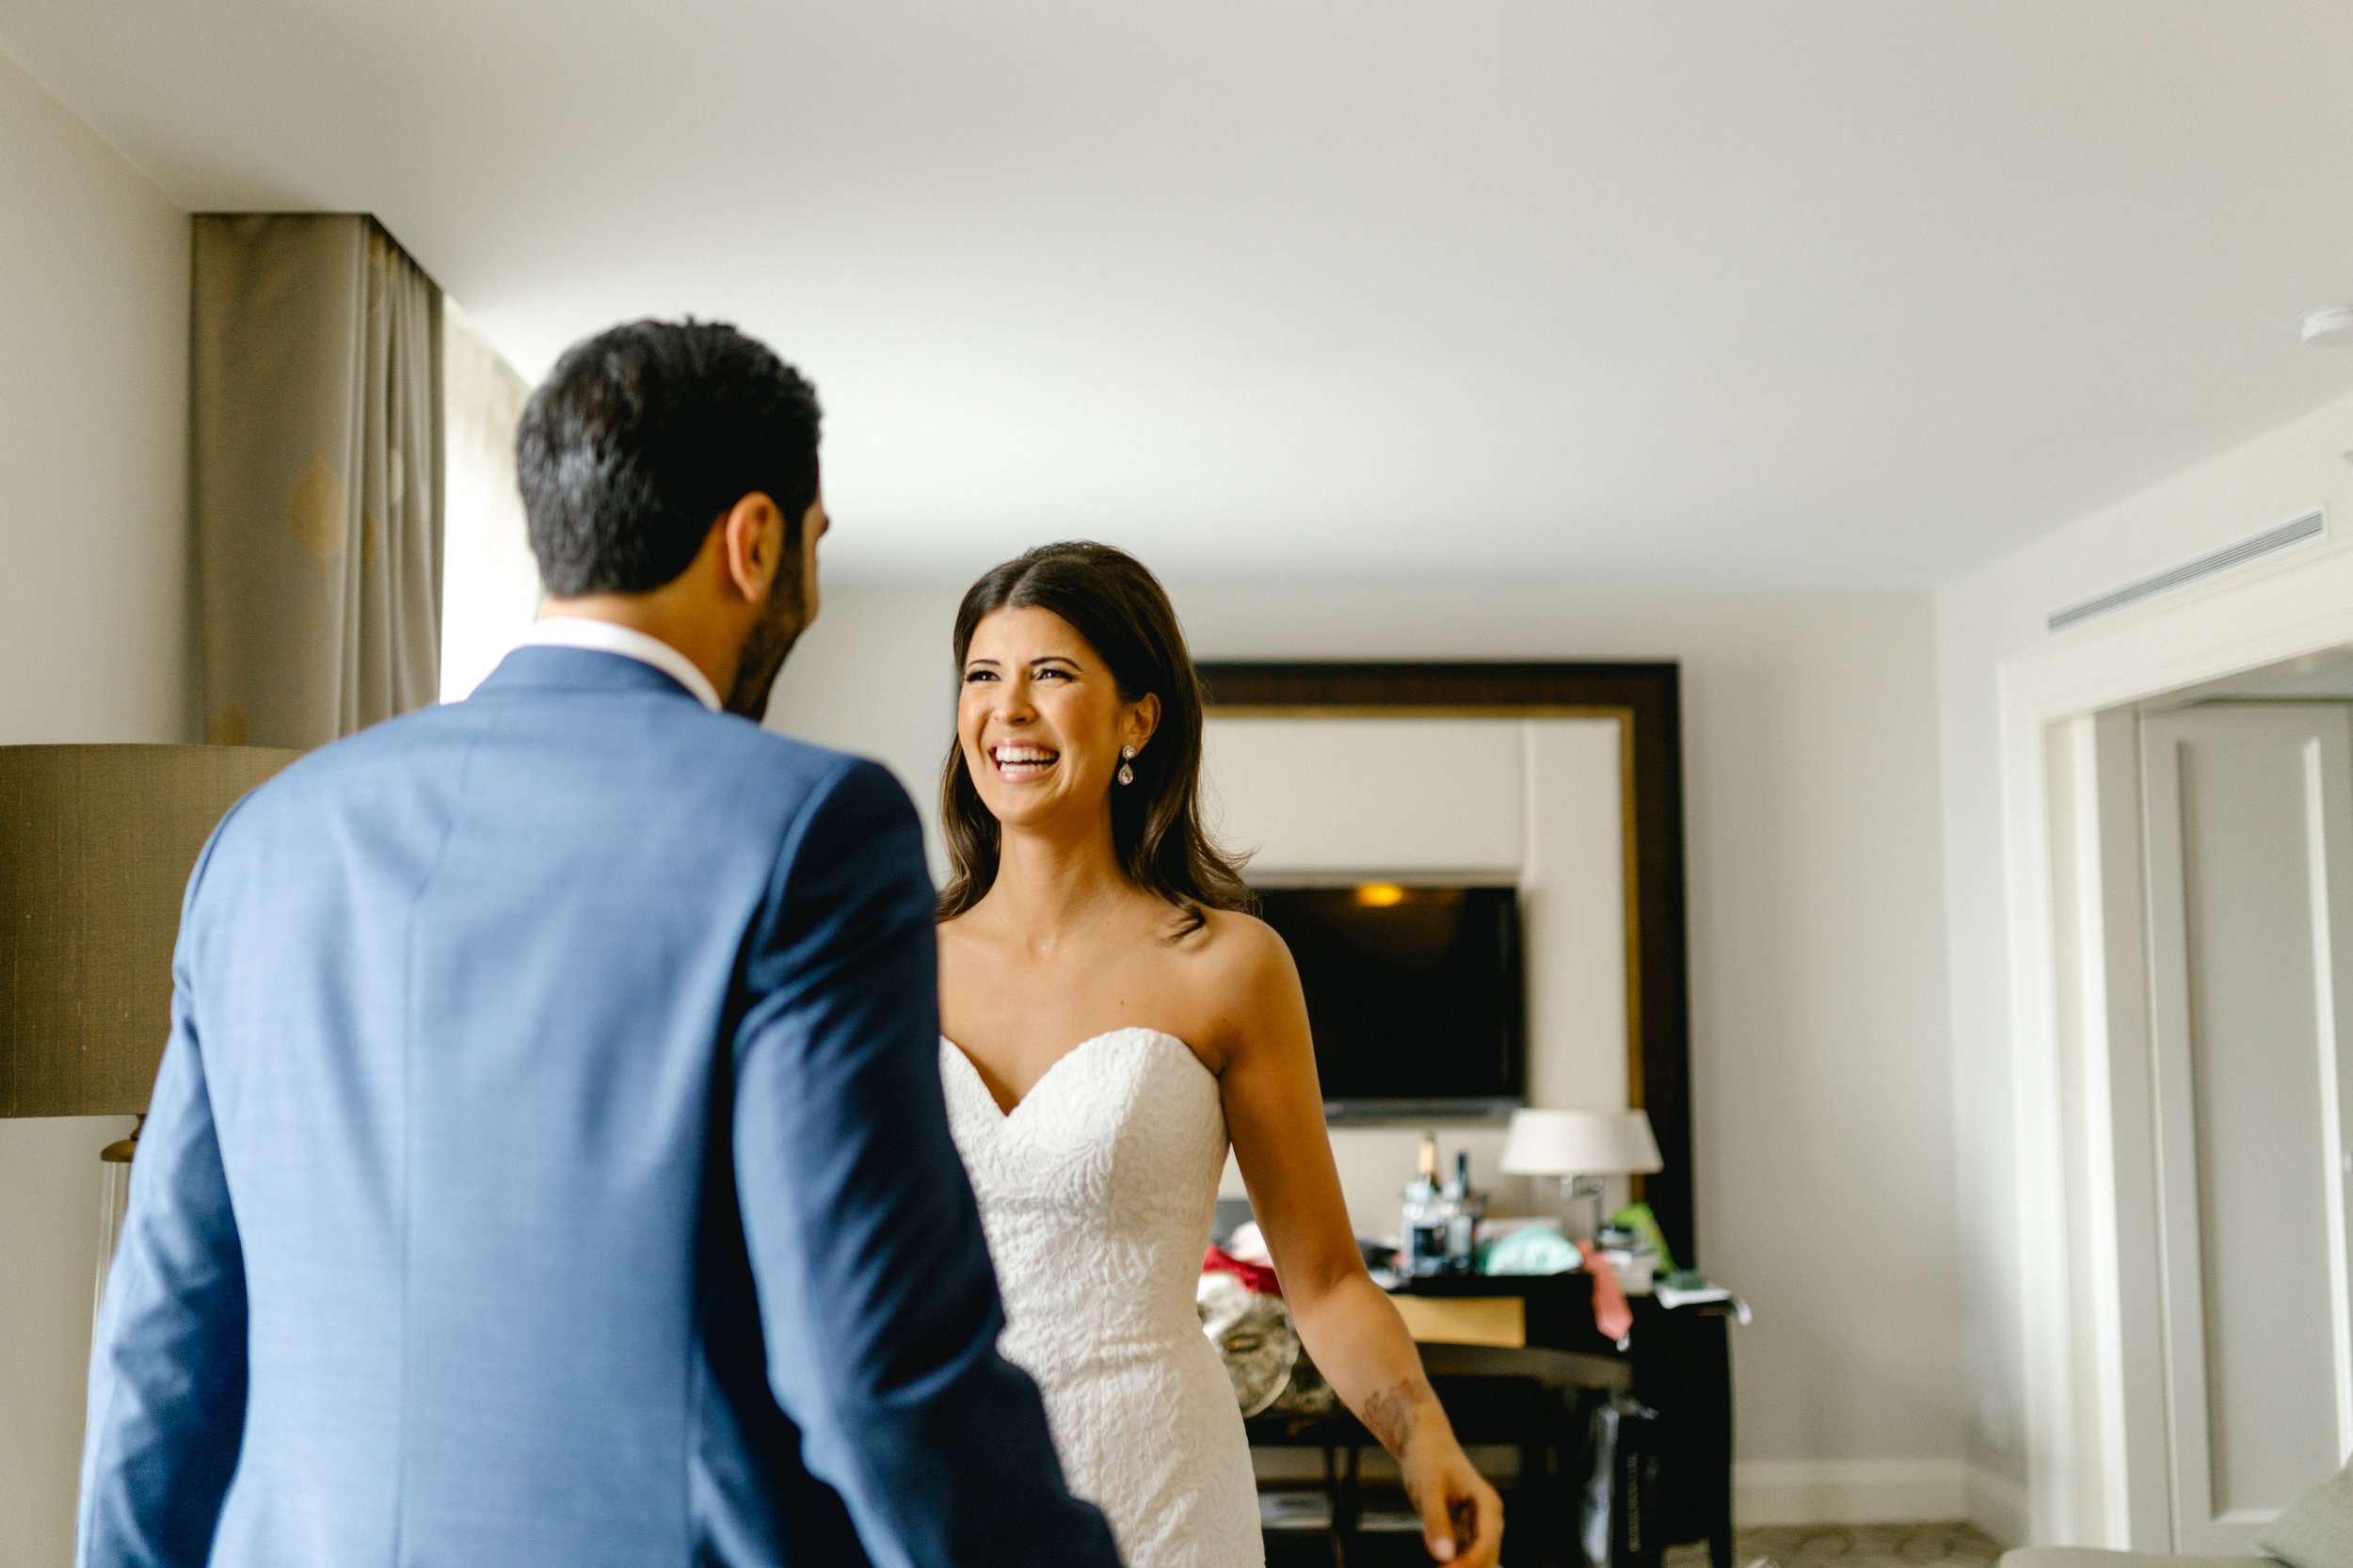 herafilms_nicole_ryan_wedding_preview_day4-2.jpg